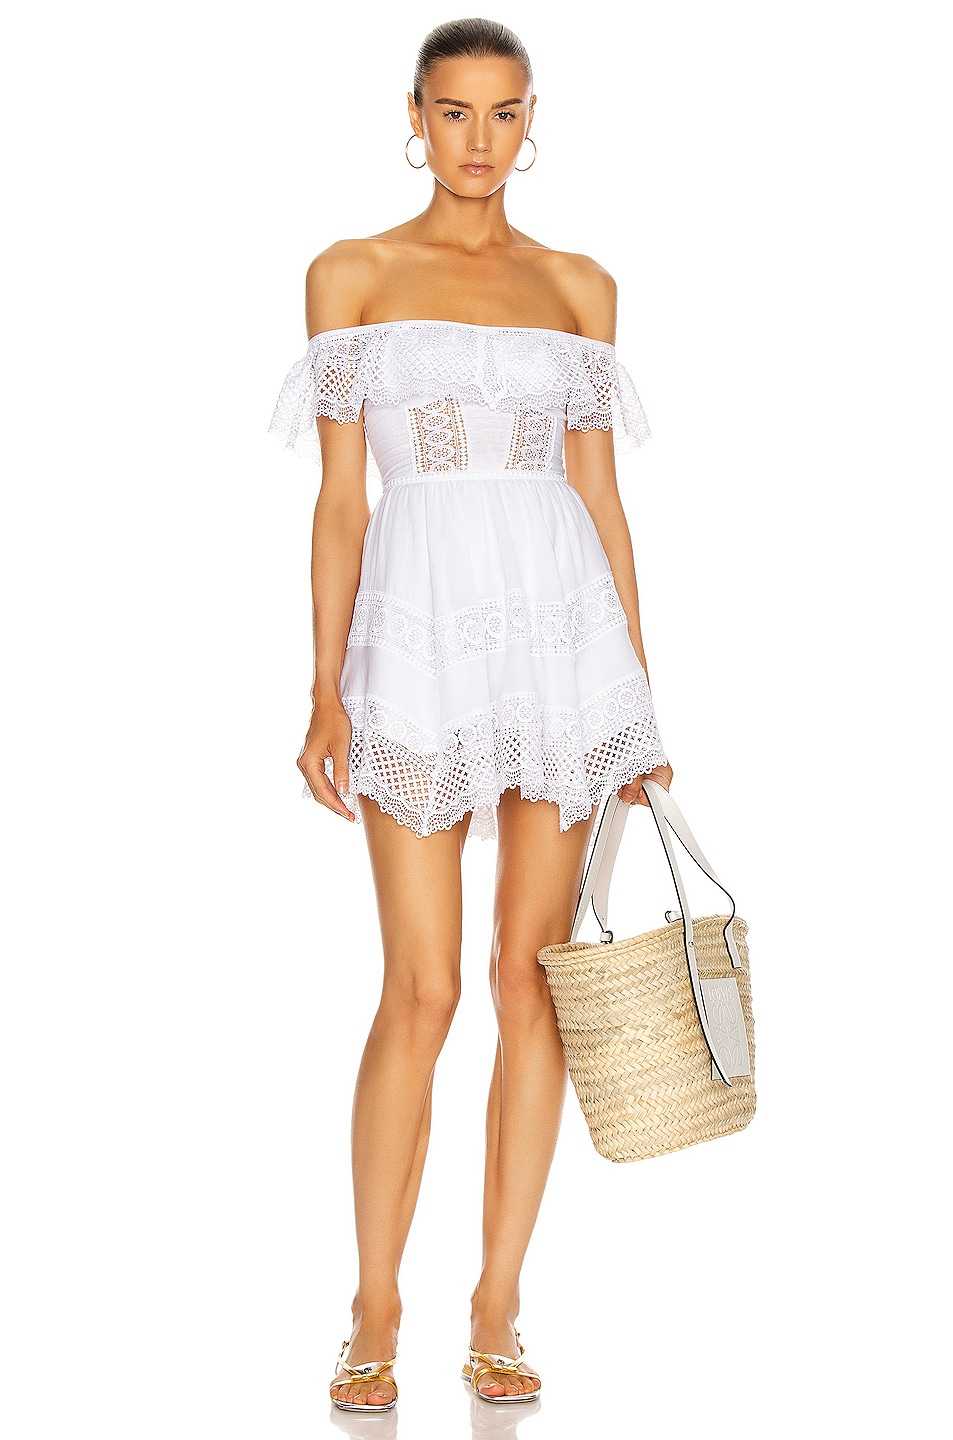 Image 1 of Charo Ruiz Ibiza Vaiana Dress in White